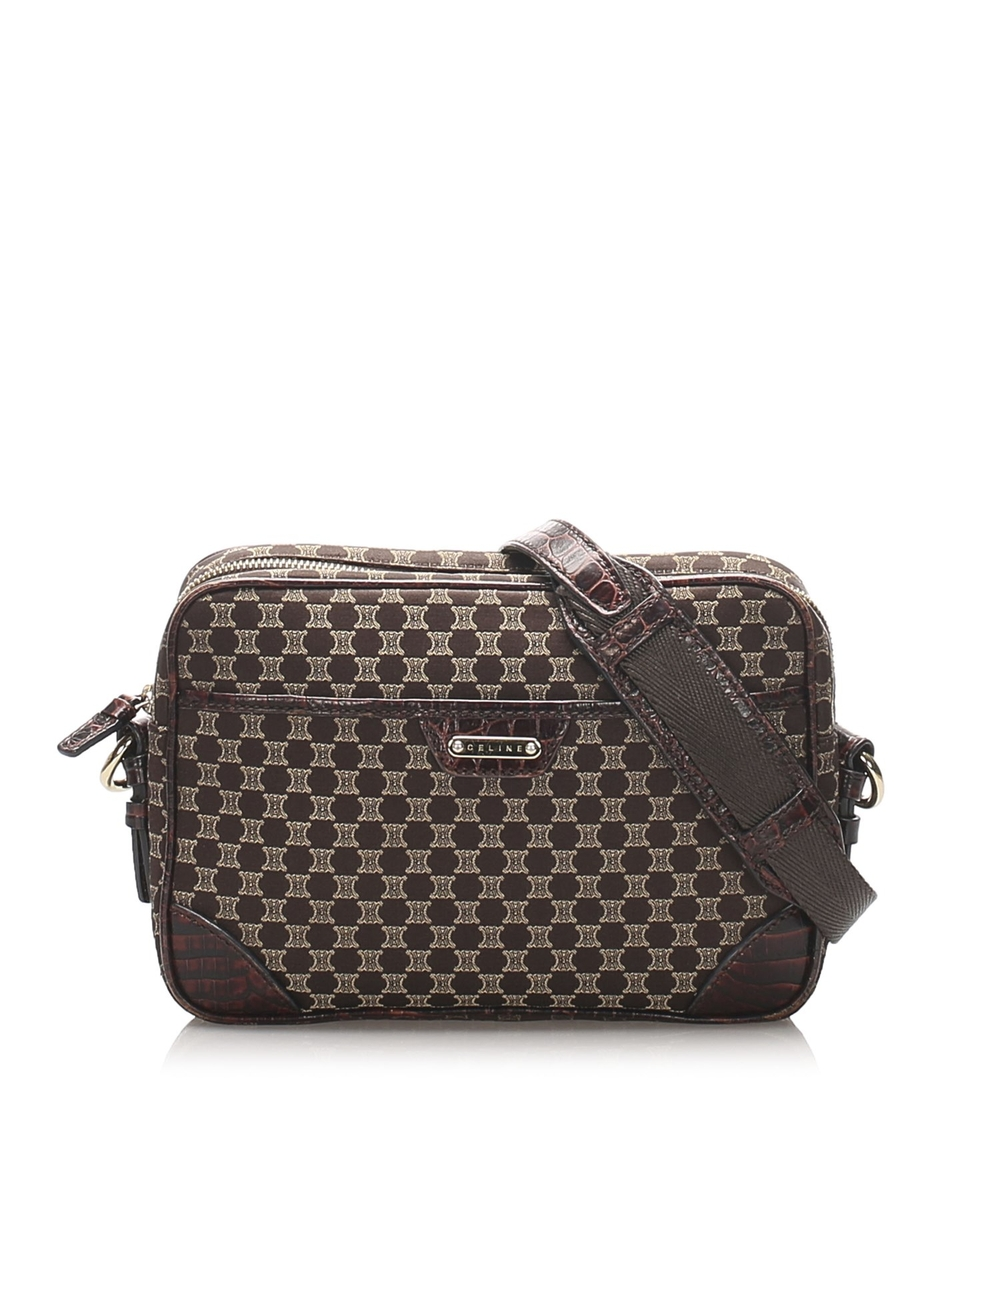 This crossbody bag features a canvas body, a front exterior slip pocket, a flat leather strap, a top